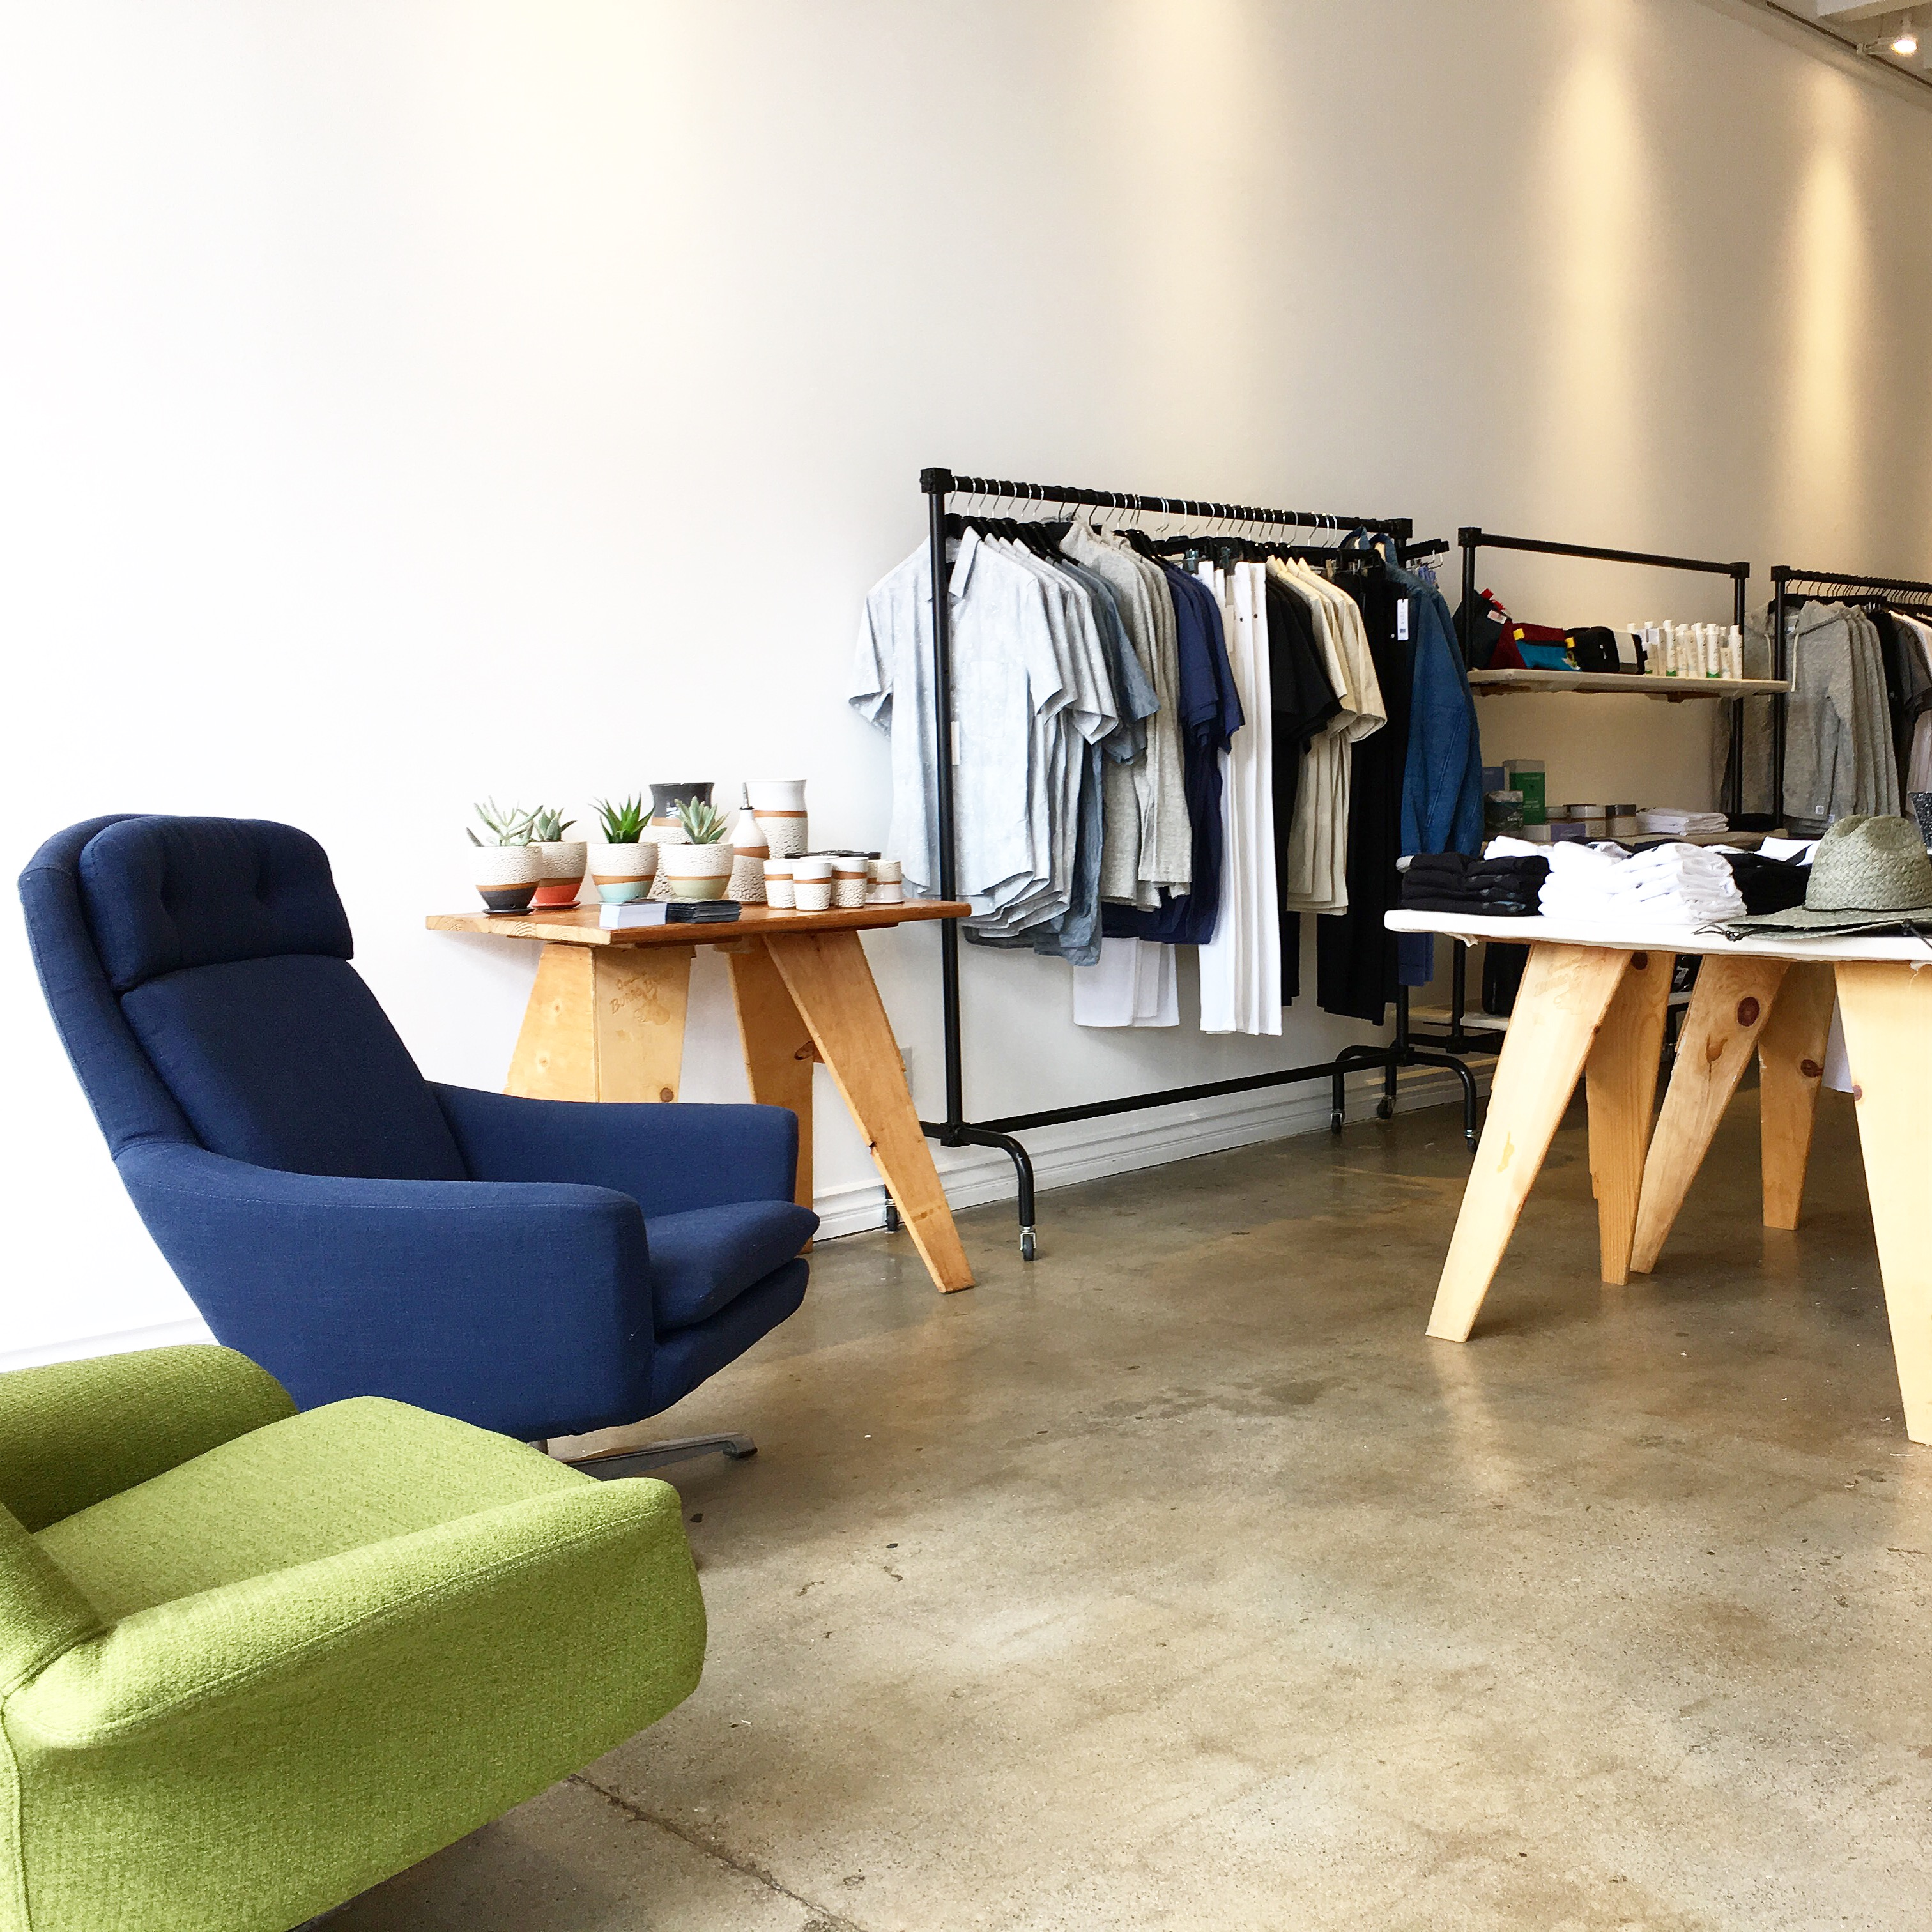 Modern menswear shop wittmore pops up on west 3rd street this month